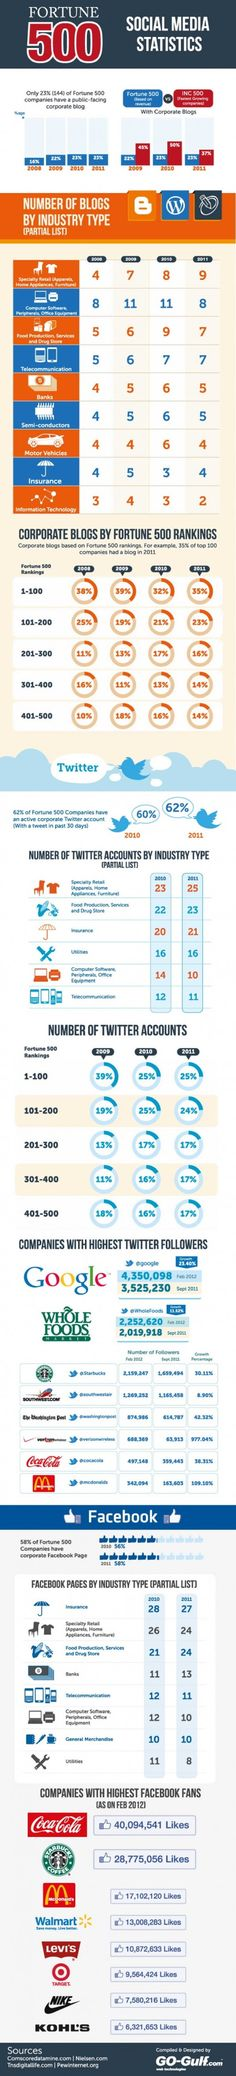 How the Fortune 500 use social media in 2012